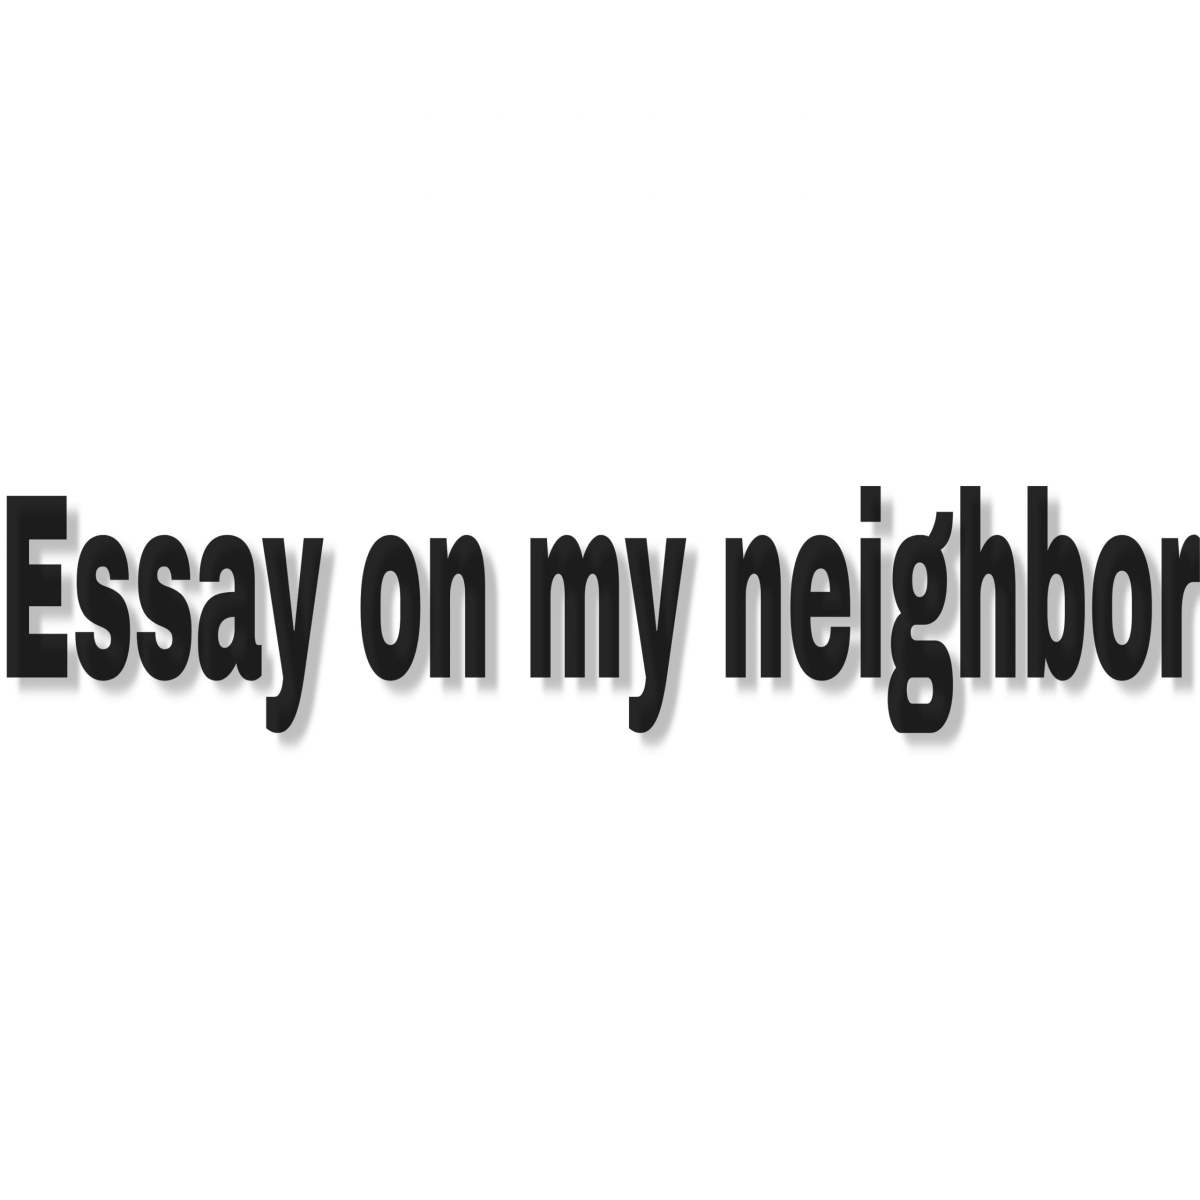 Essay on my neighbor